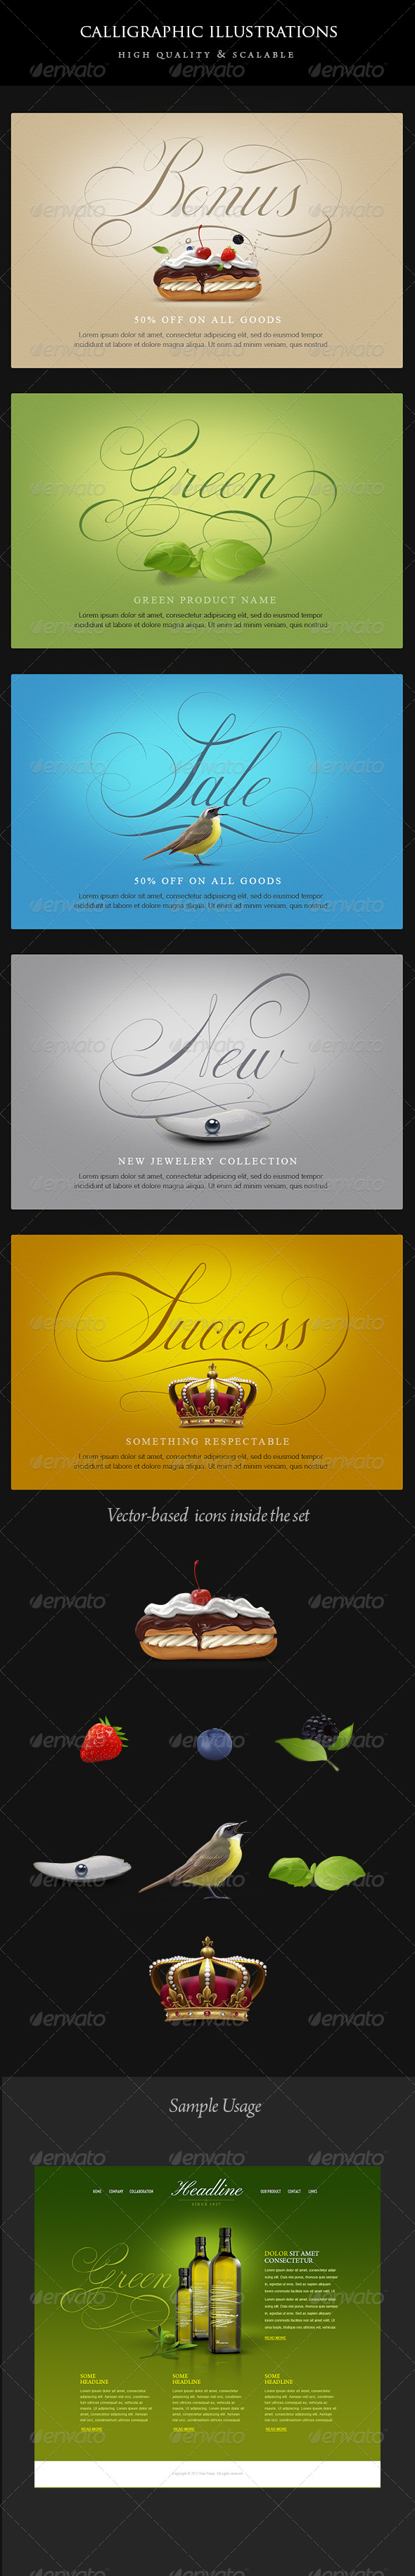 GraphicRiver Vintage Calligraphic Illustrations 4514999